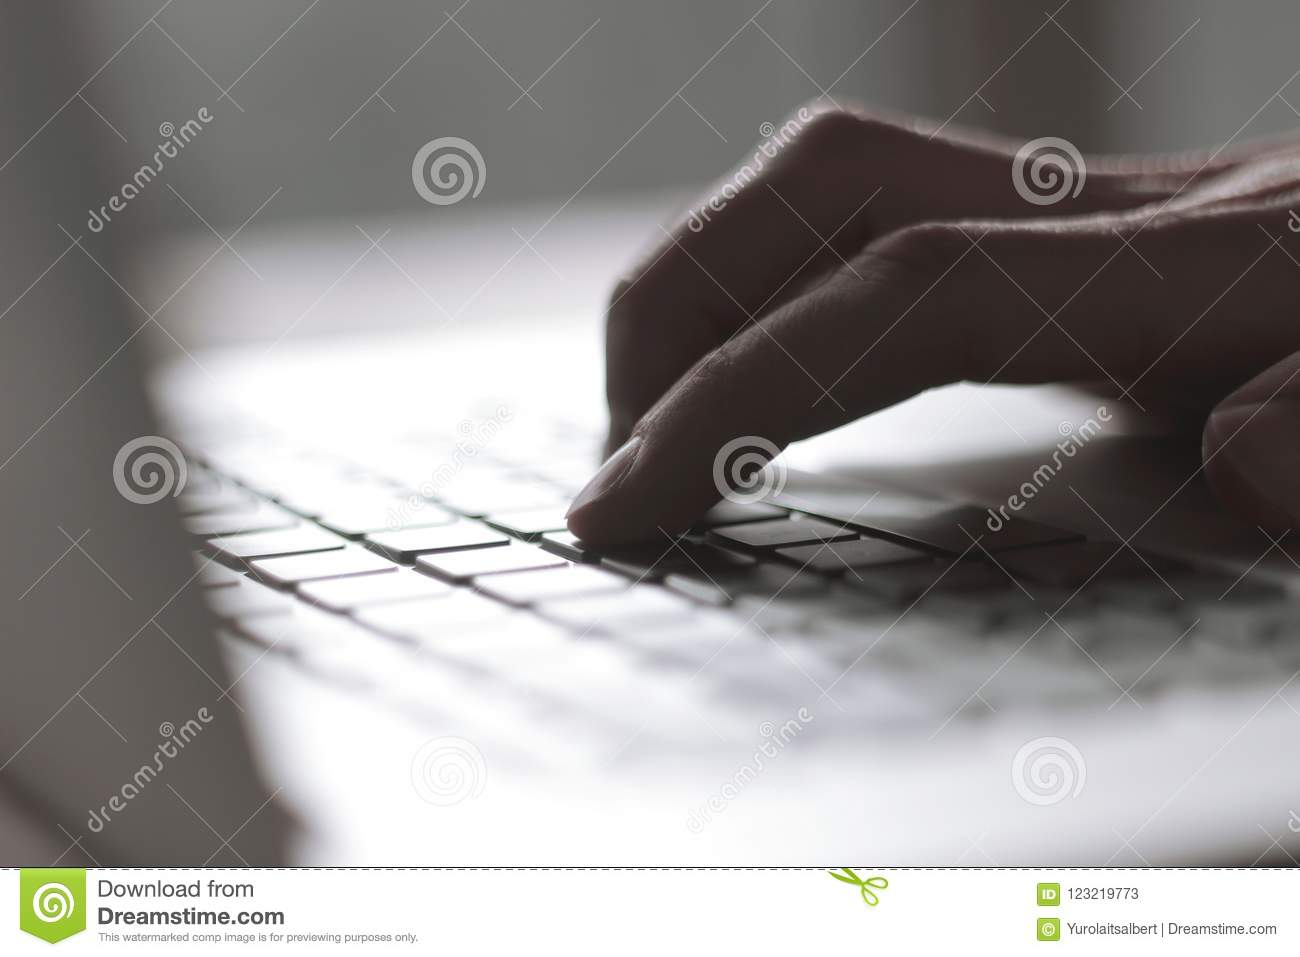 Close up. blurred image of male hand typing on laptop keyboard